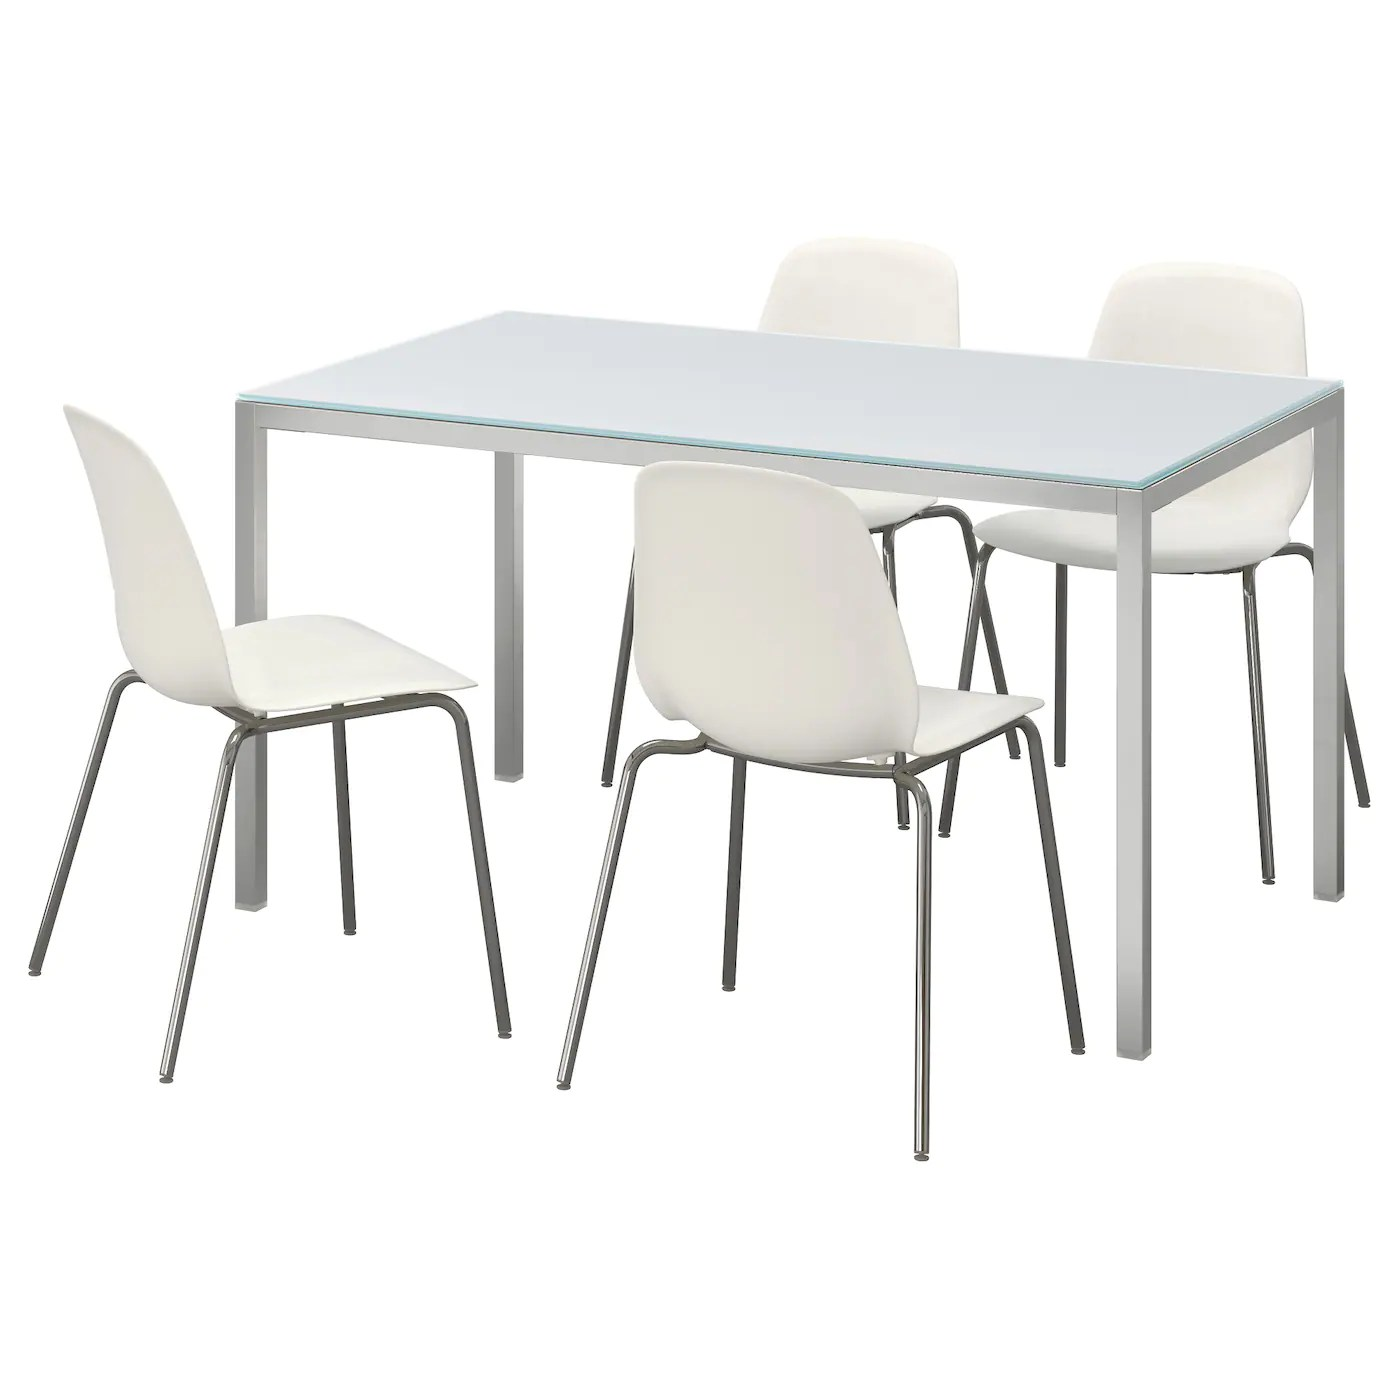 Glazen Stoelen Ikea Torsby Leifarne Table And 4 Chairs Glass White White 135